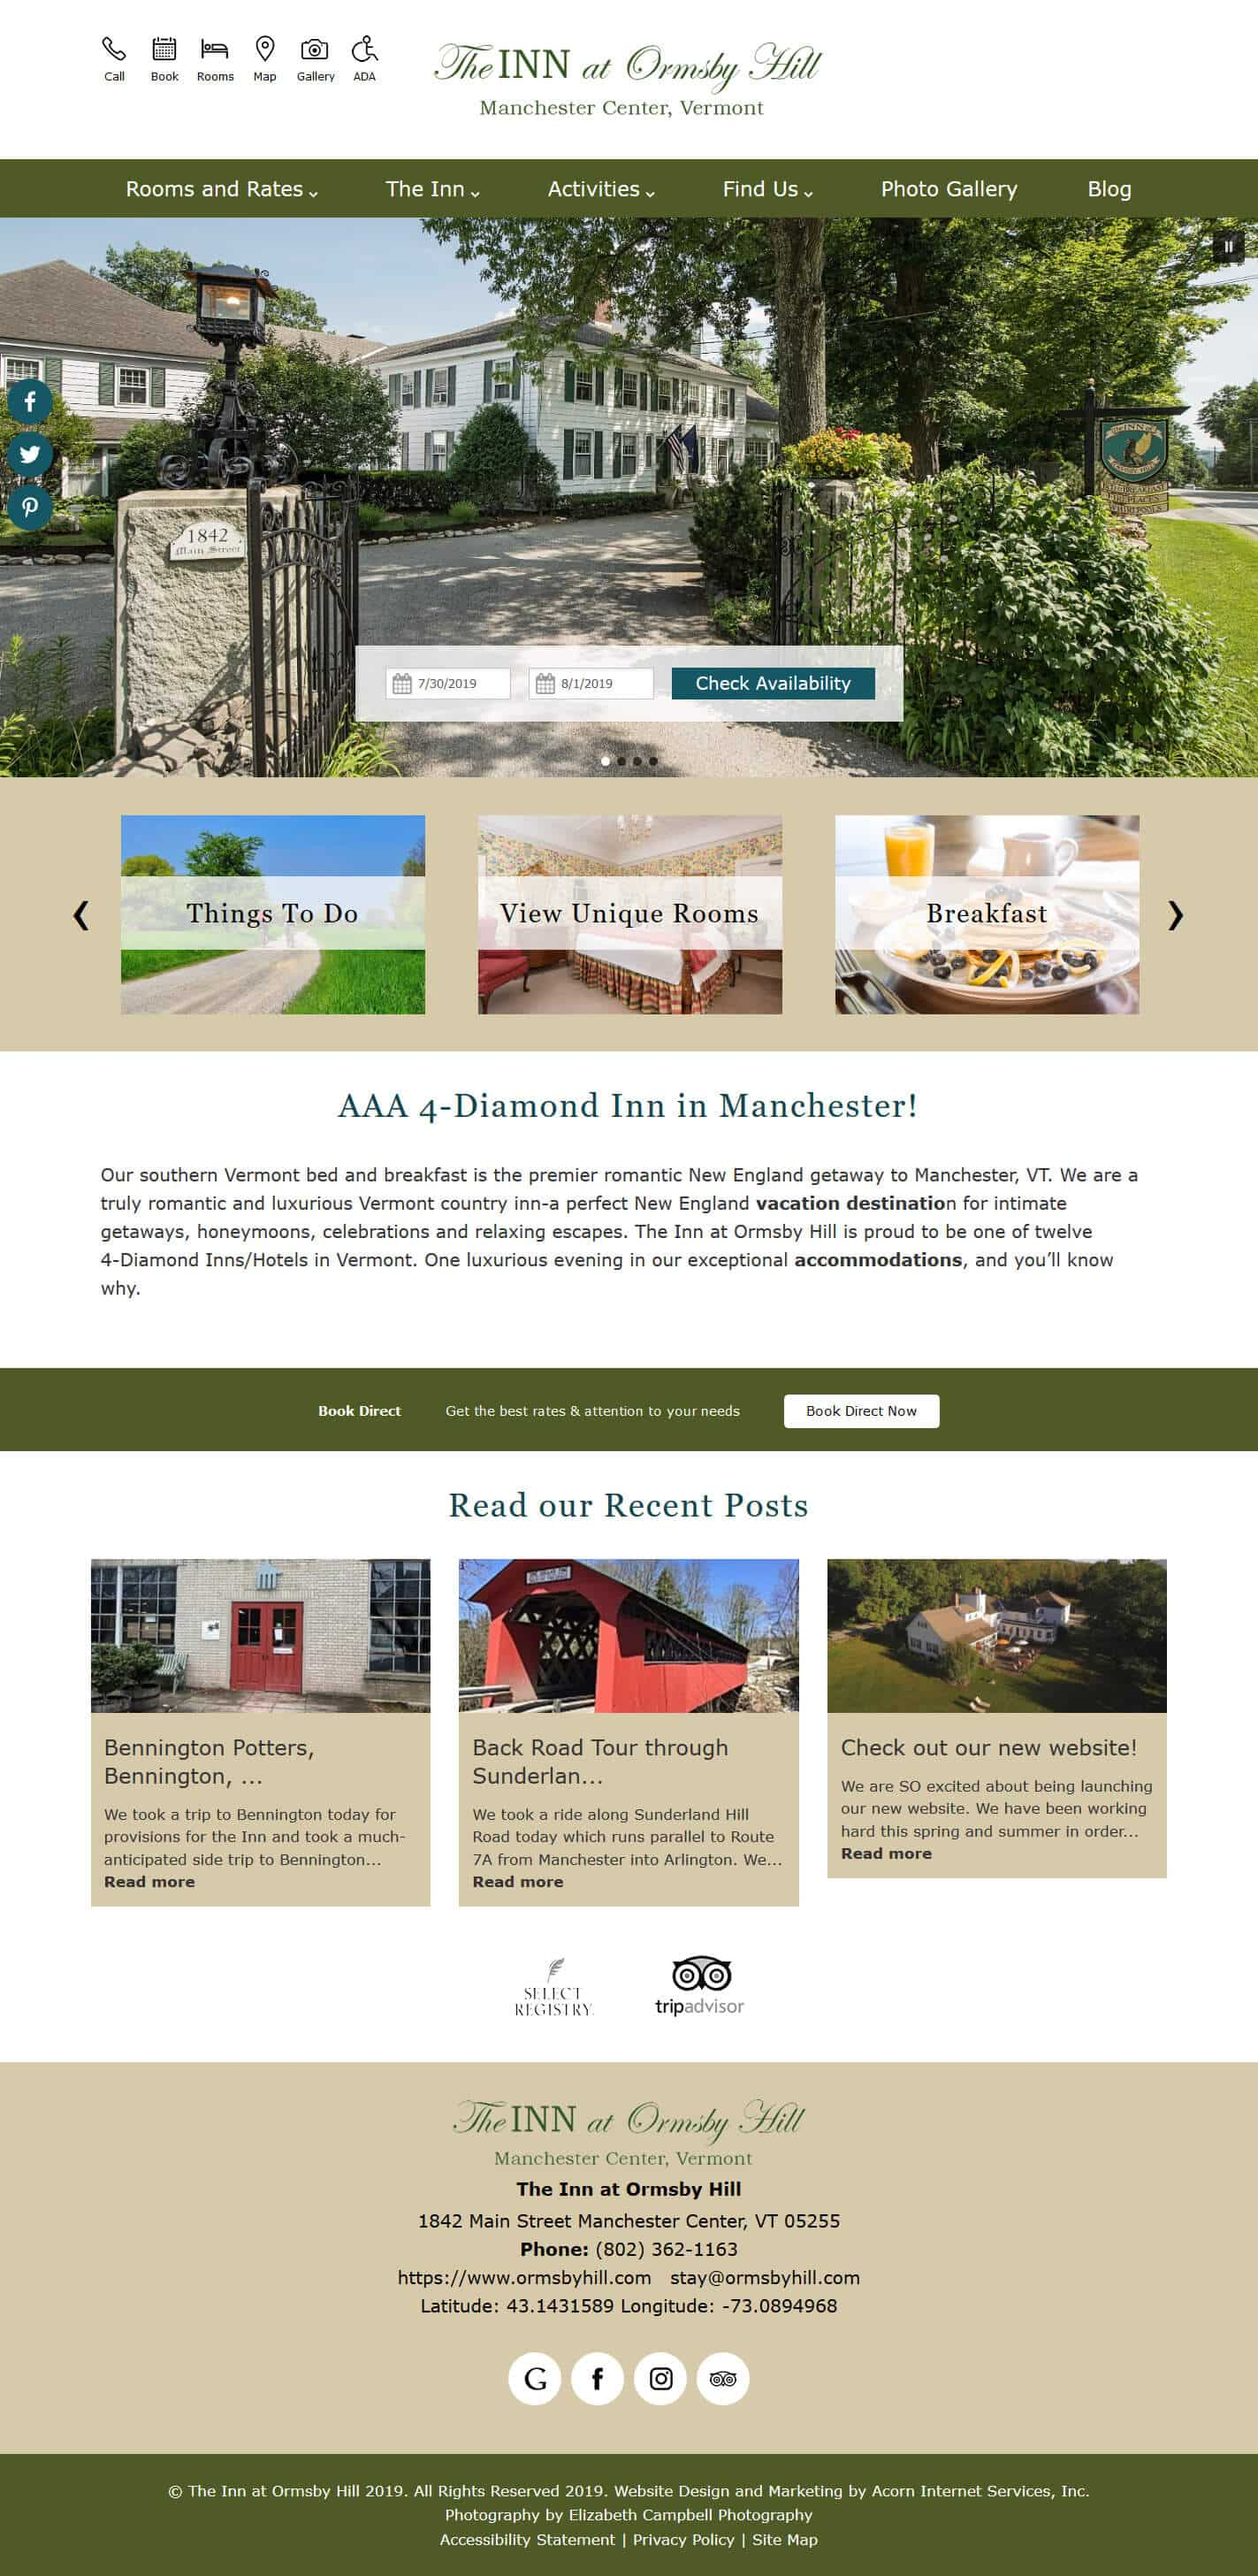 The Inn at Ormsby Hill home page